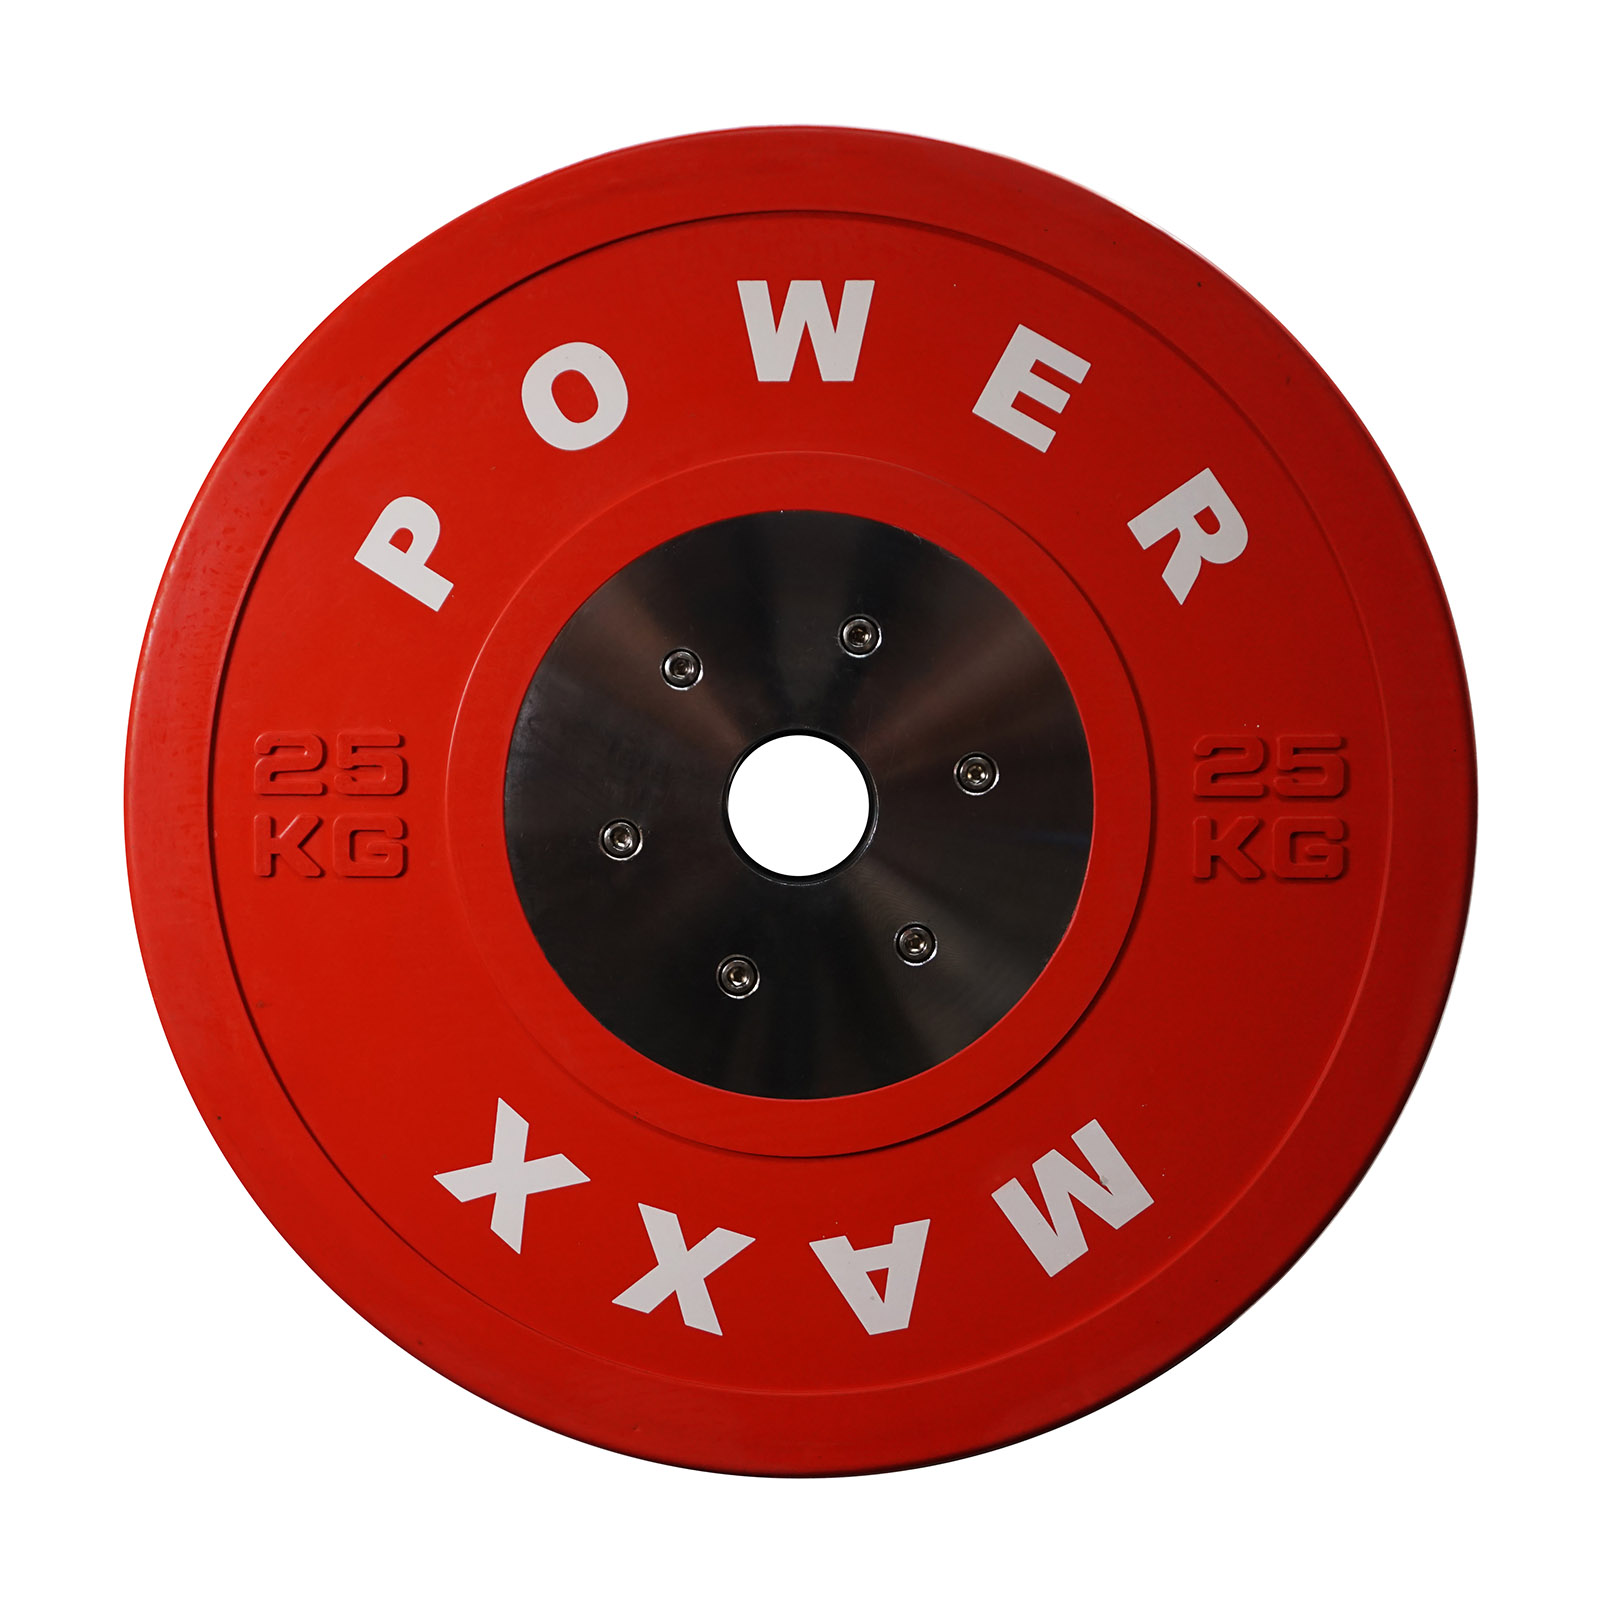 weightlifting weight plates